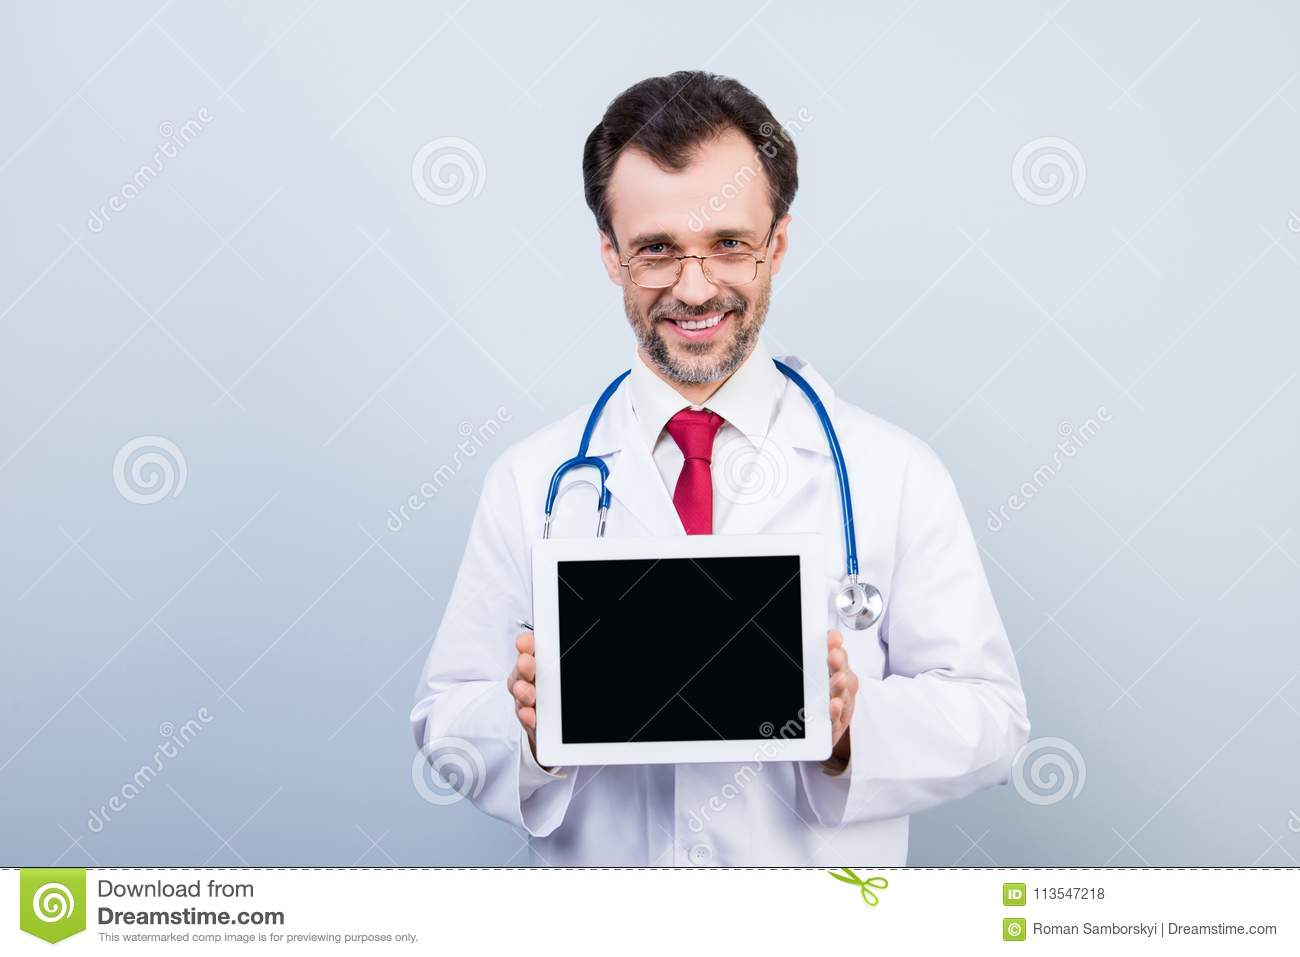 Portrait of experienced qualified cheerful confident doctor demo